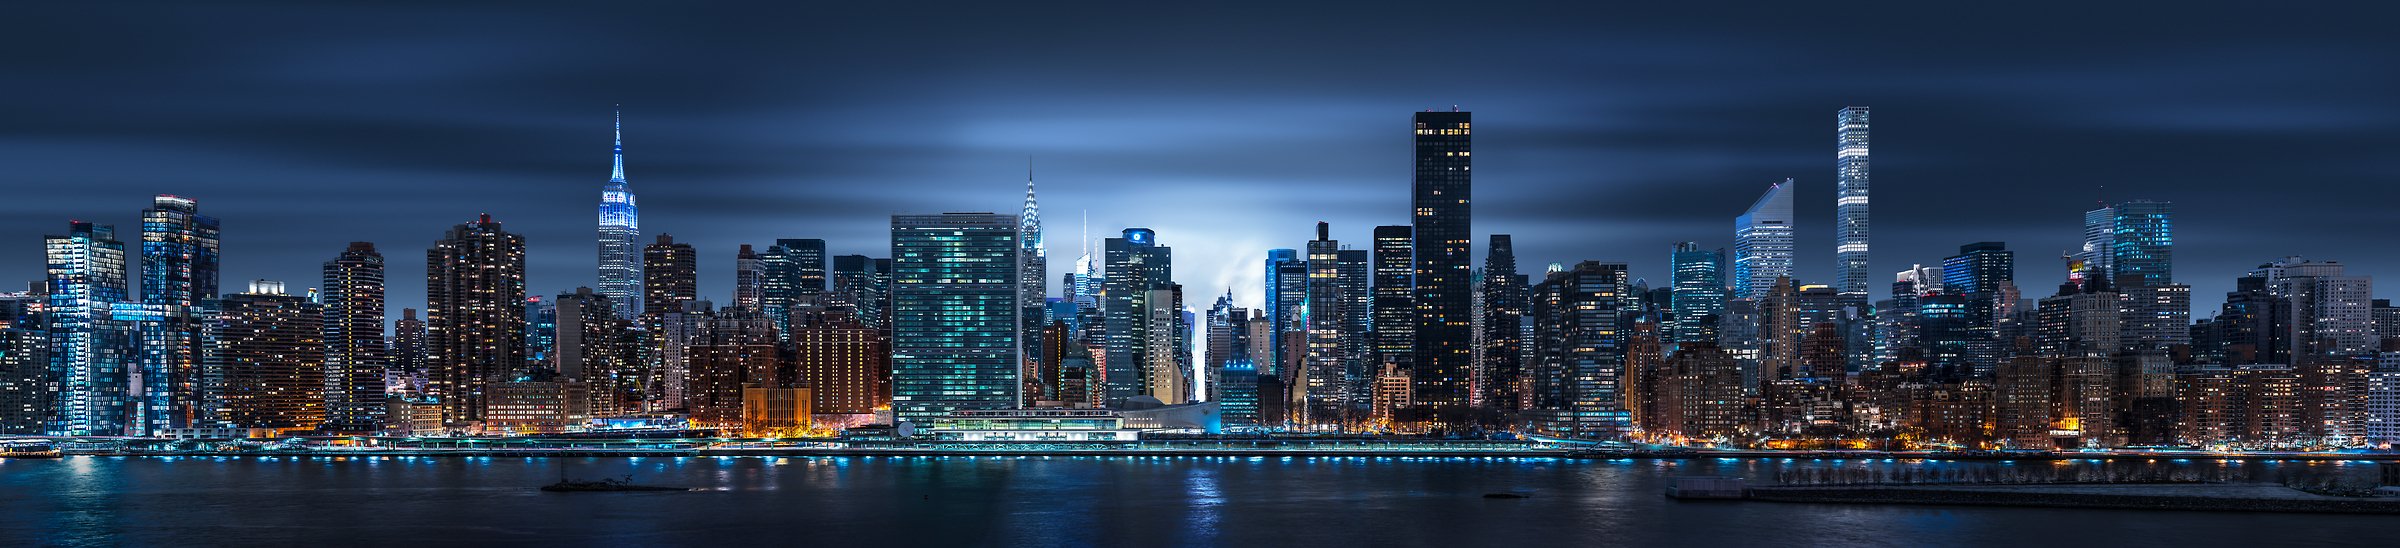 6,410 megapixels! A very high resolution, large-format VAST photo print of the NYC skyline at night with the East River; cityscape photo created by Dan Piech